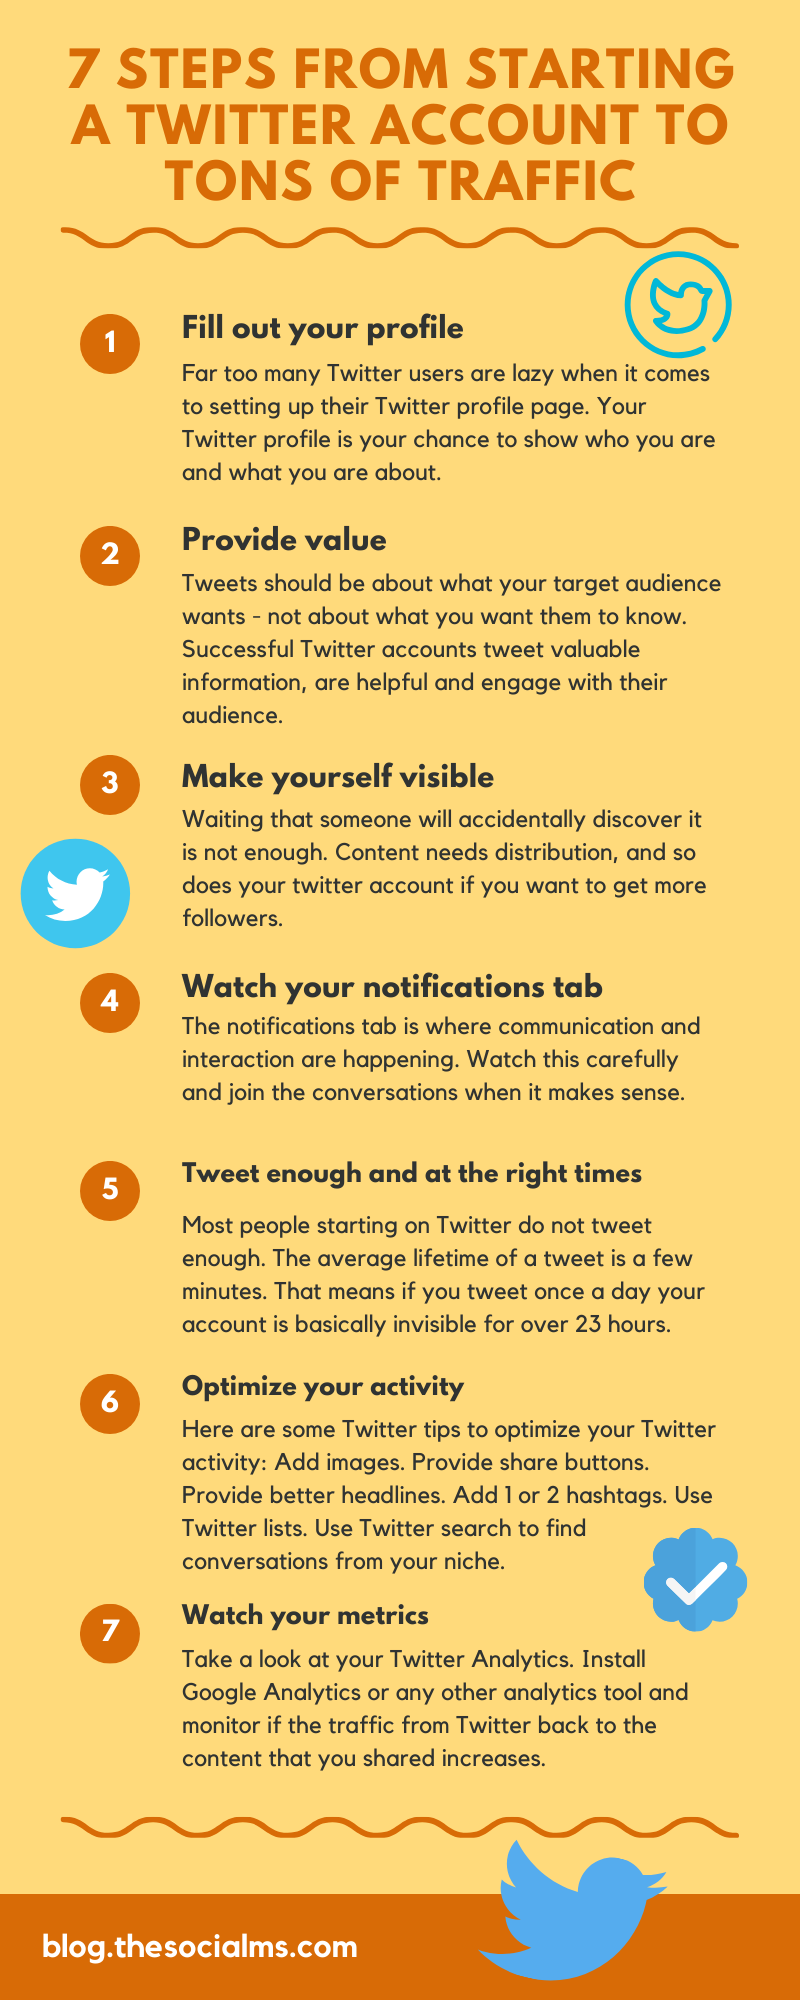 Generating traffic to a website is one way of being successful with Twitter. And here are the necessary steps you need to take to get there. #witter #twittertips #twittermarketing #twitterstrategy #blogtraffic #trafficgeneration